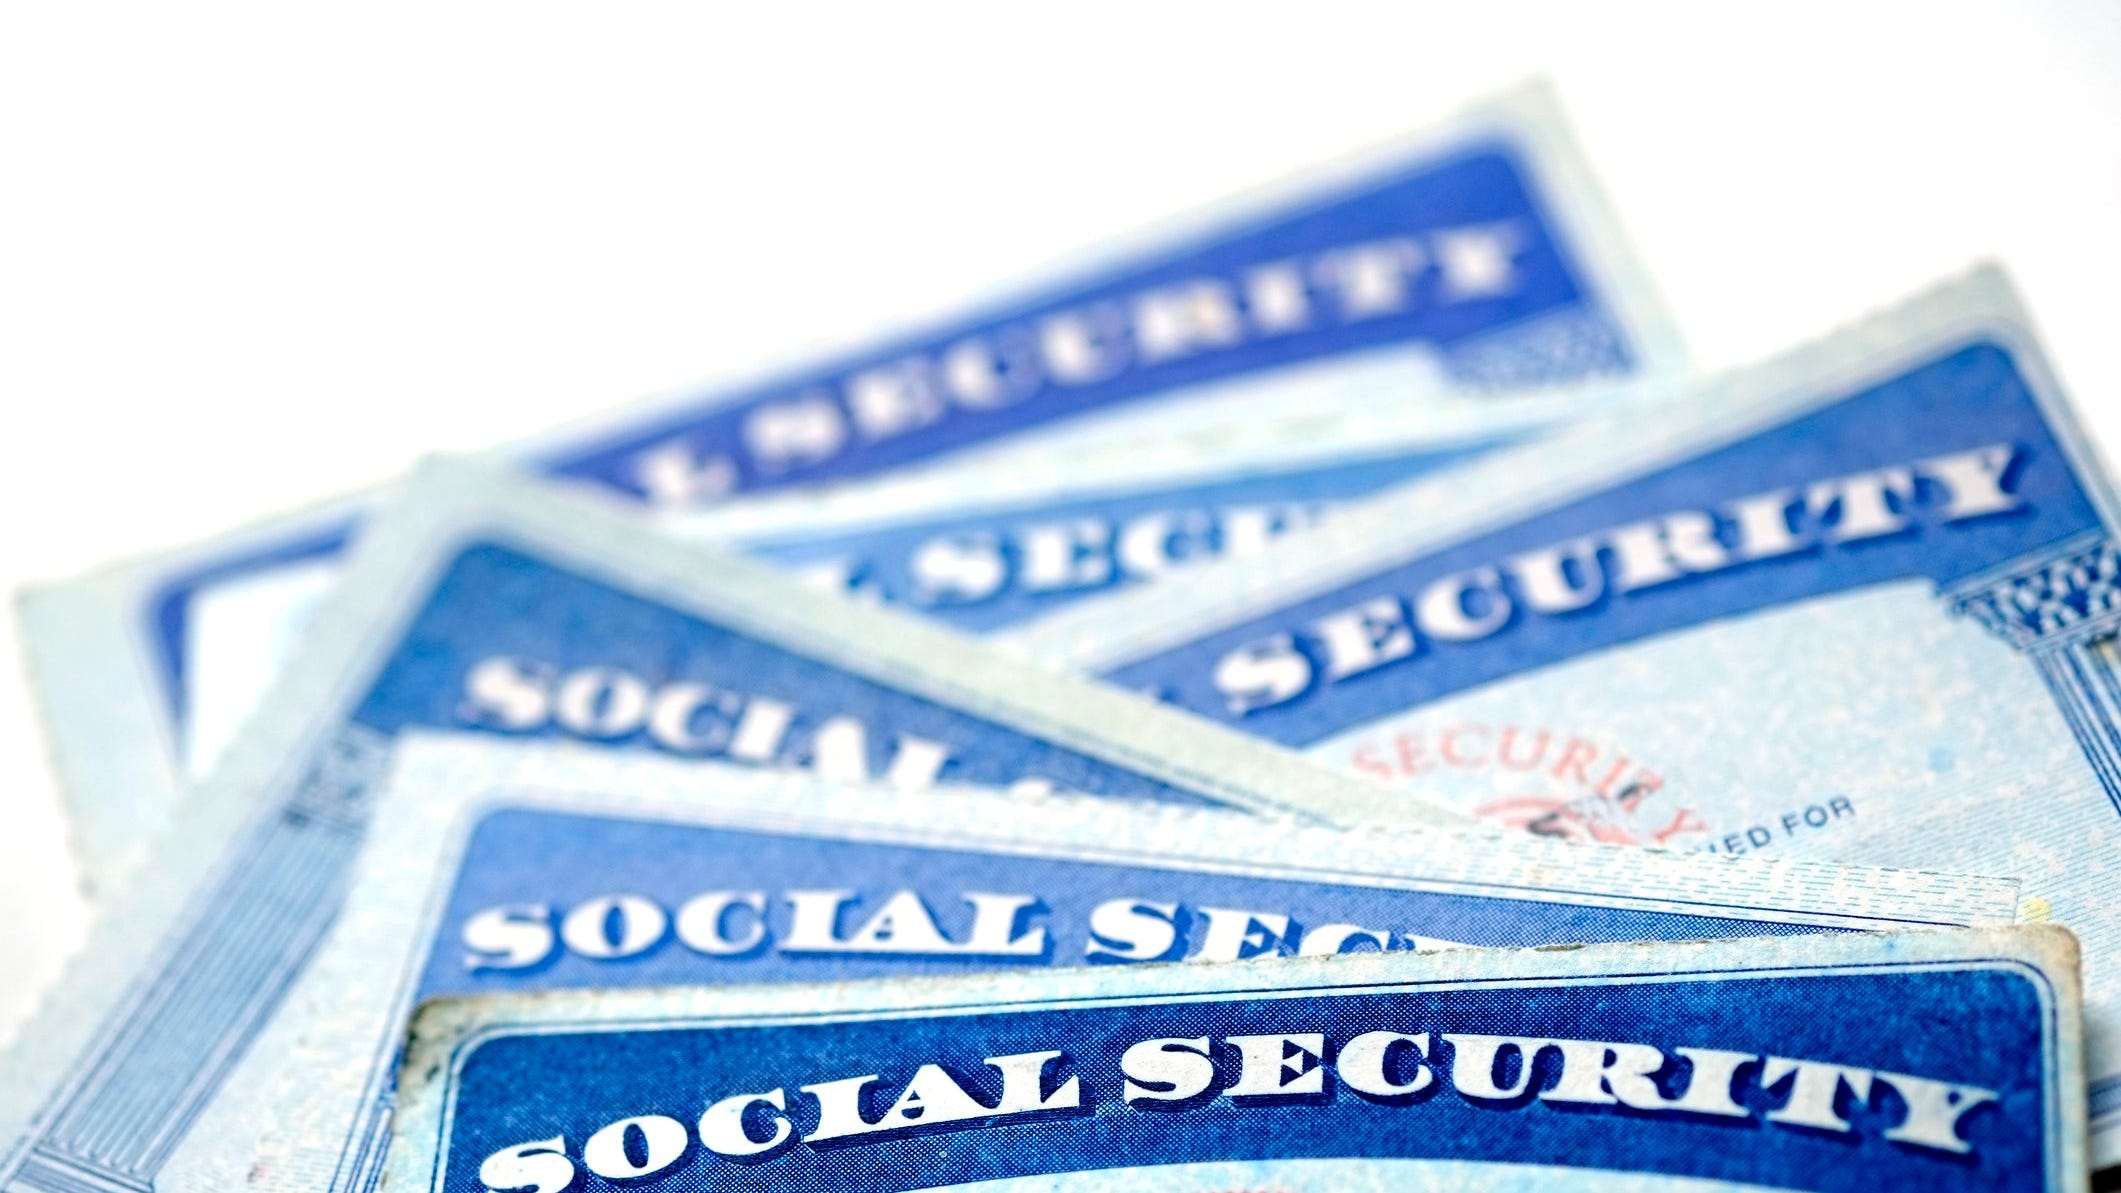 Took Social Security early during the pandemic and regretting it? You could get a do-over